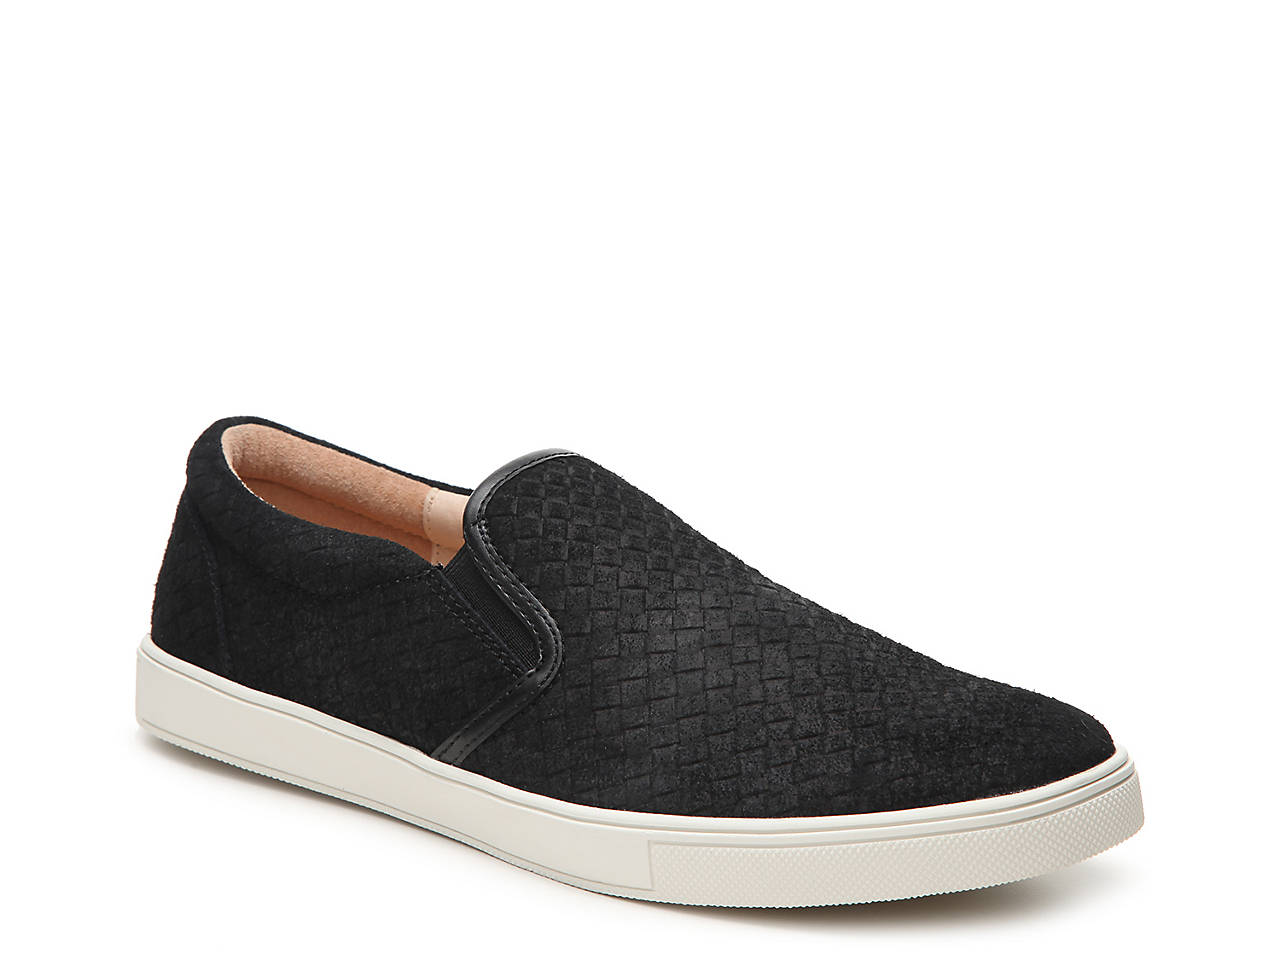 320c857d9 Sam Edelman Eric Slip-On Sneaker Men s Shoes